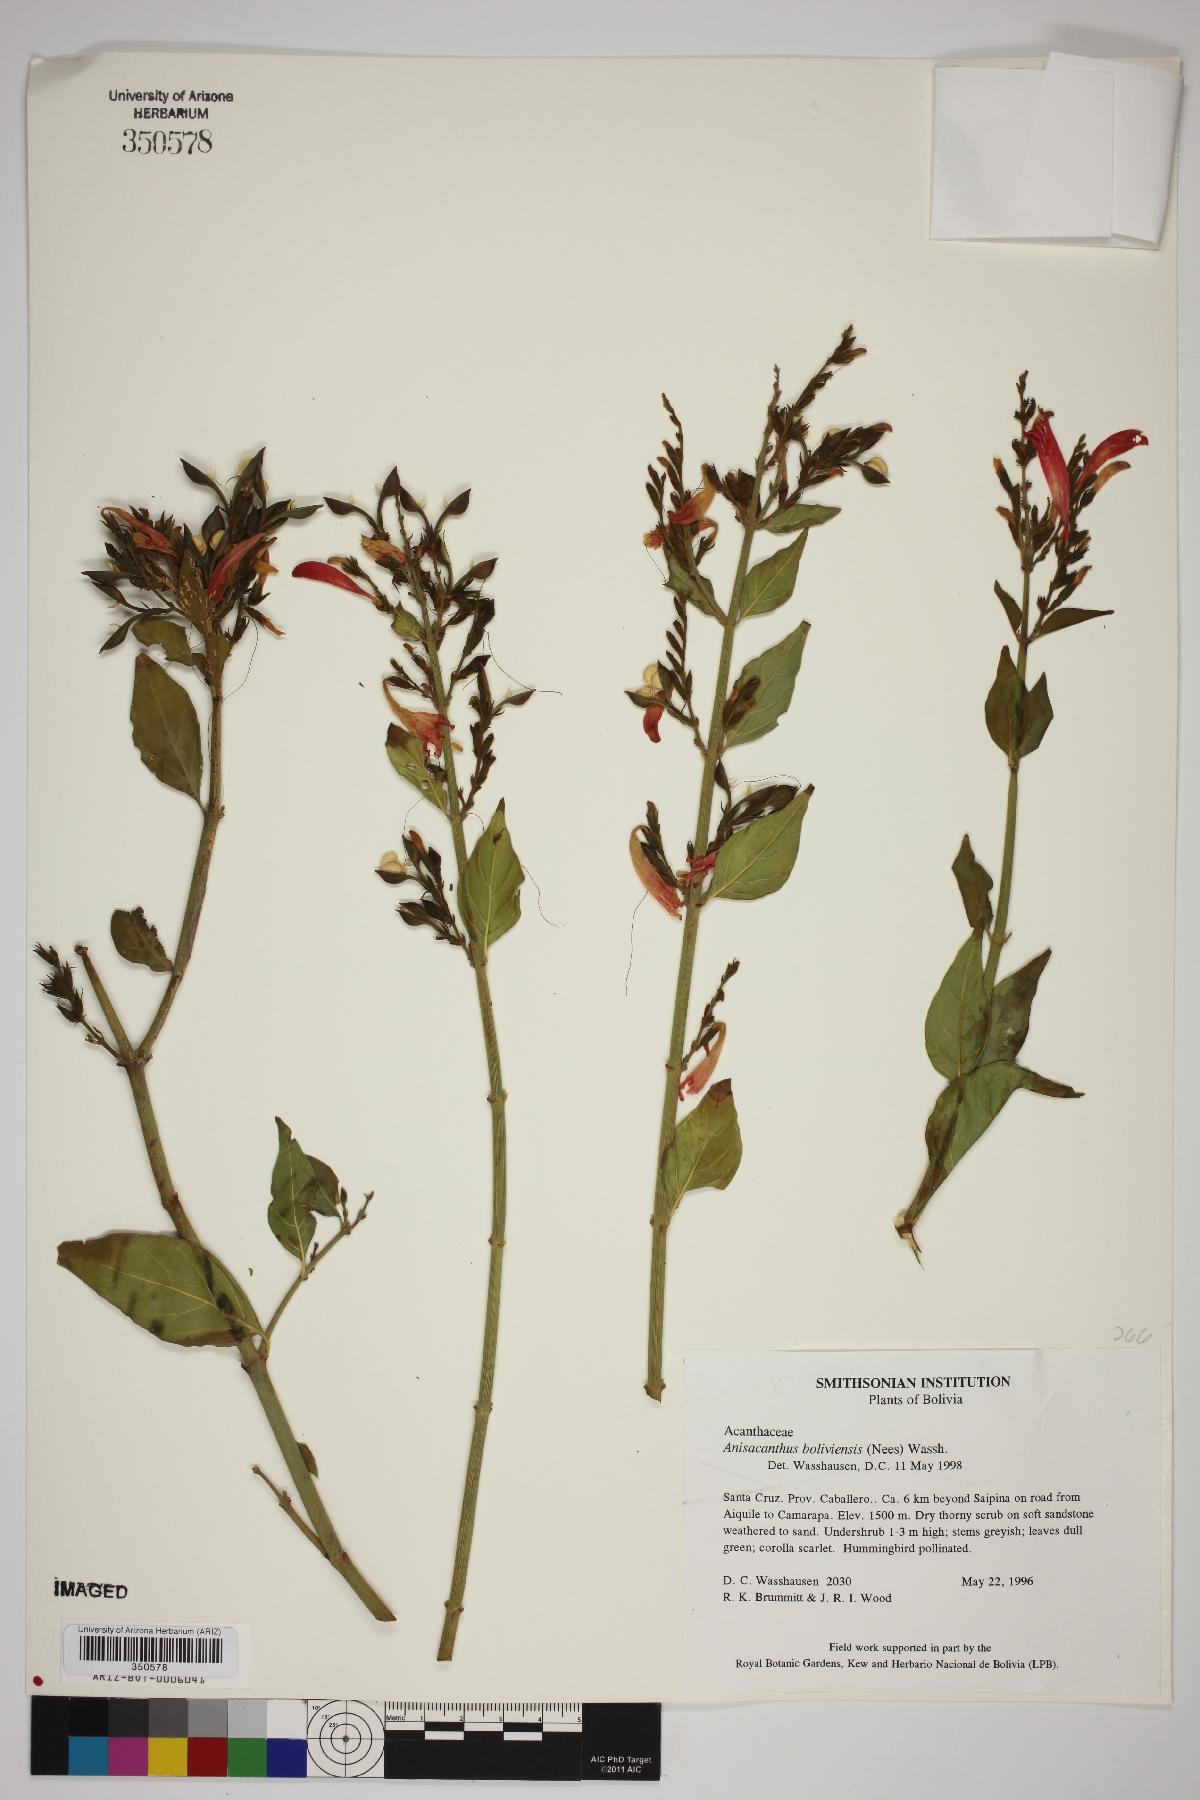 Anisacanthus boliviensis image